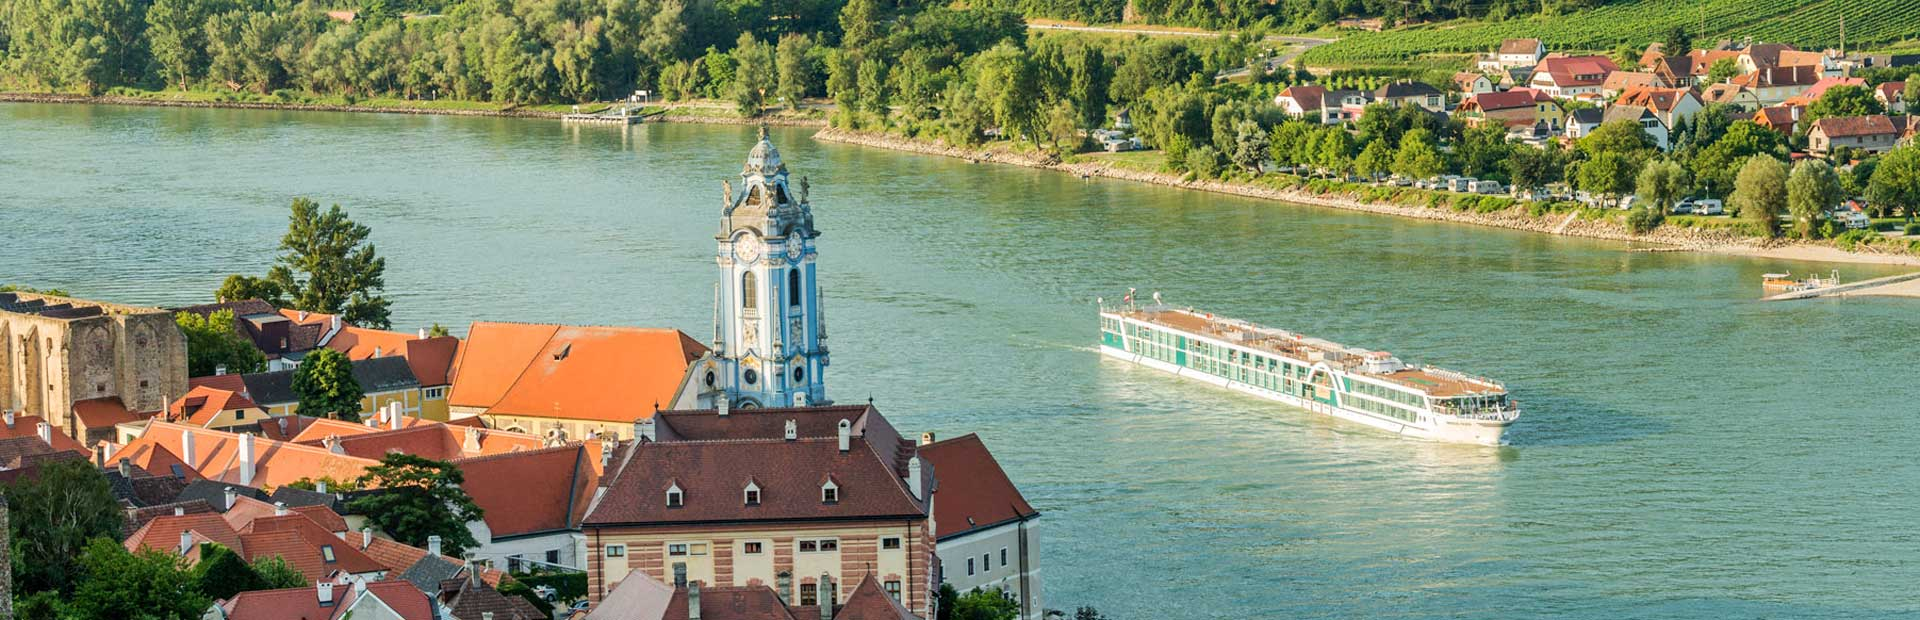 Amadeus Silver on the river Danube